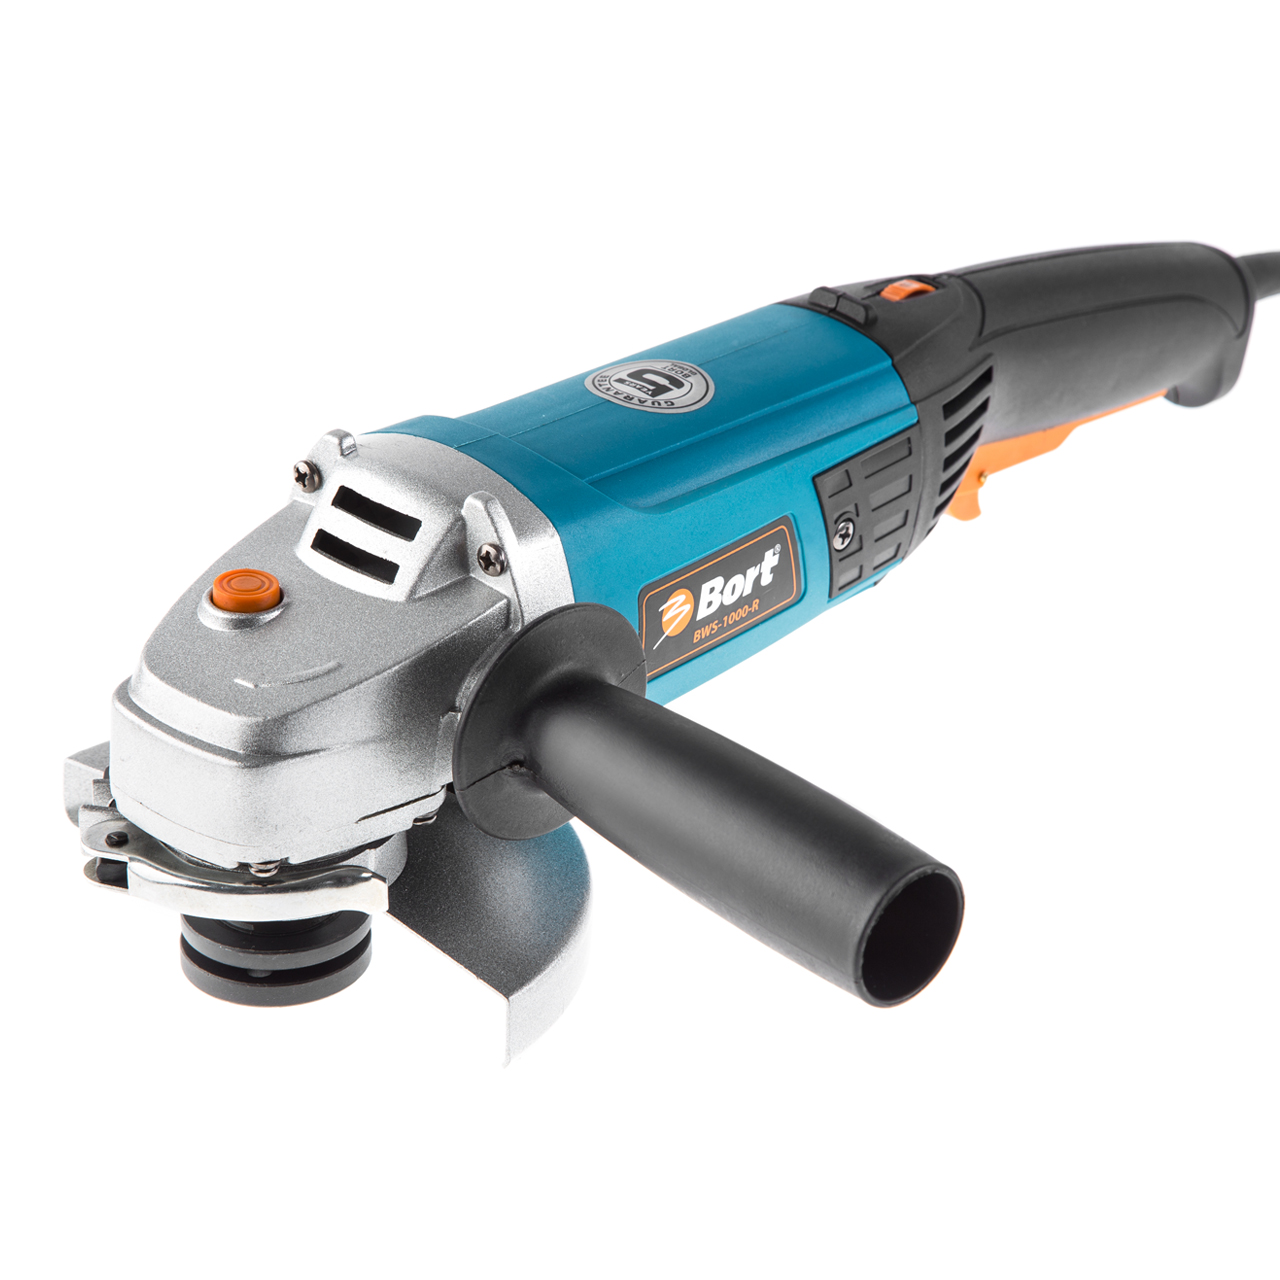 BORT Angle Grinder bulgarian USHM Grinding machine Electric grinder Angle Grinder grinding Power or cutting metal portable Woods Steel Power Tool Warranty BWS-1000-R air compressor die grinder grinding polish stone kit air angle die grinder kit pneumatic tools